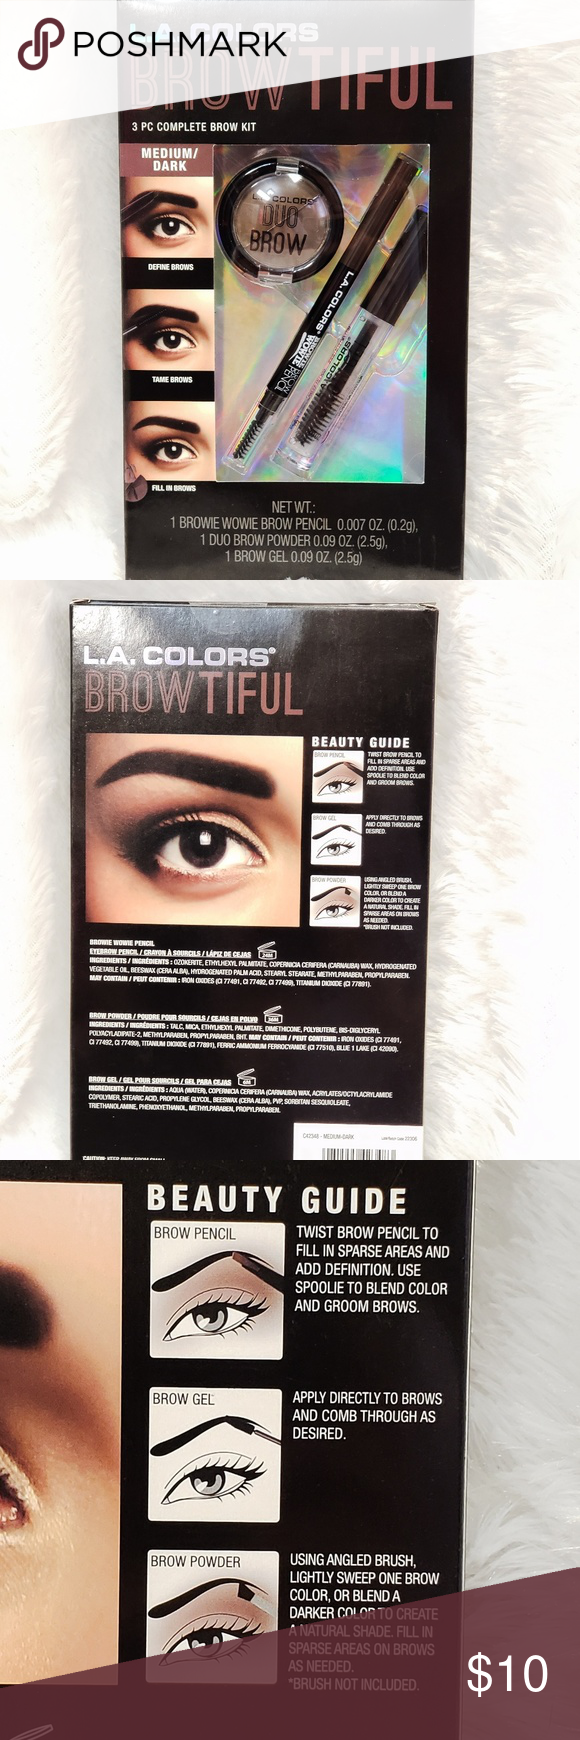 NIB L.A. Colors BROWTIFUL 3pc Complete Brow Set NWT